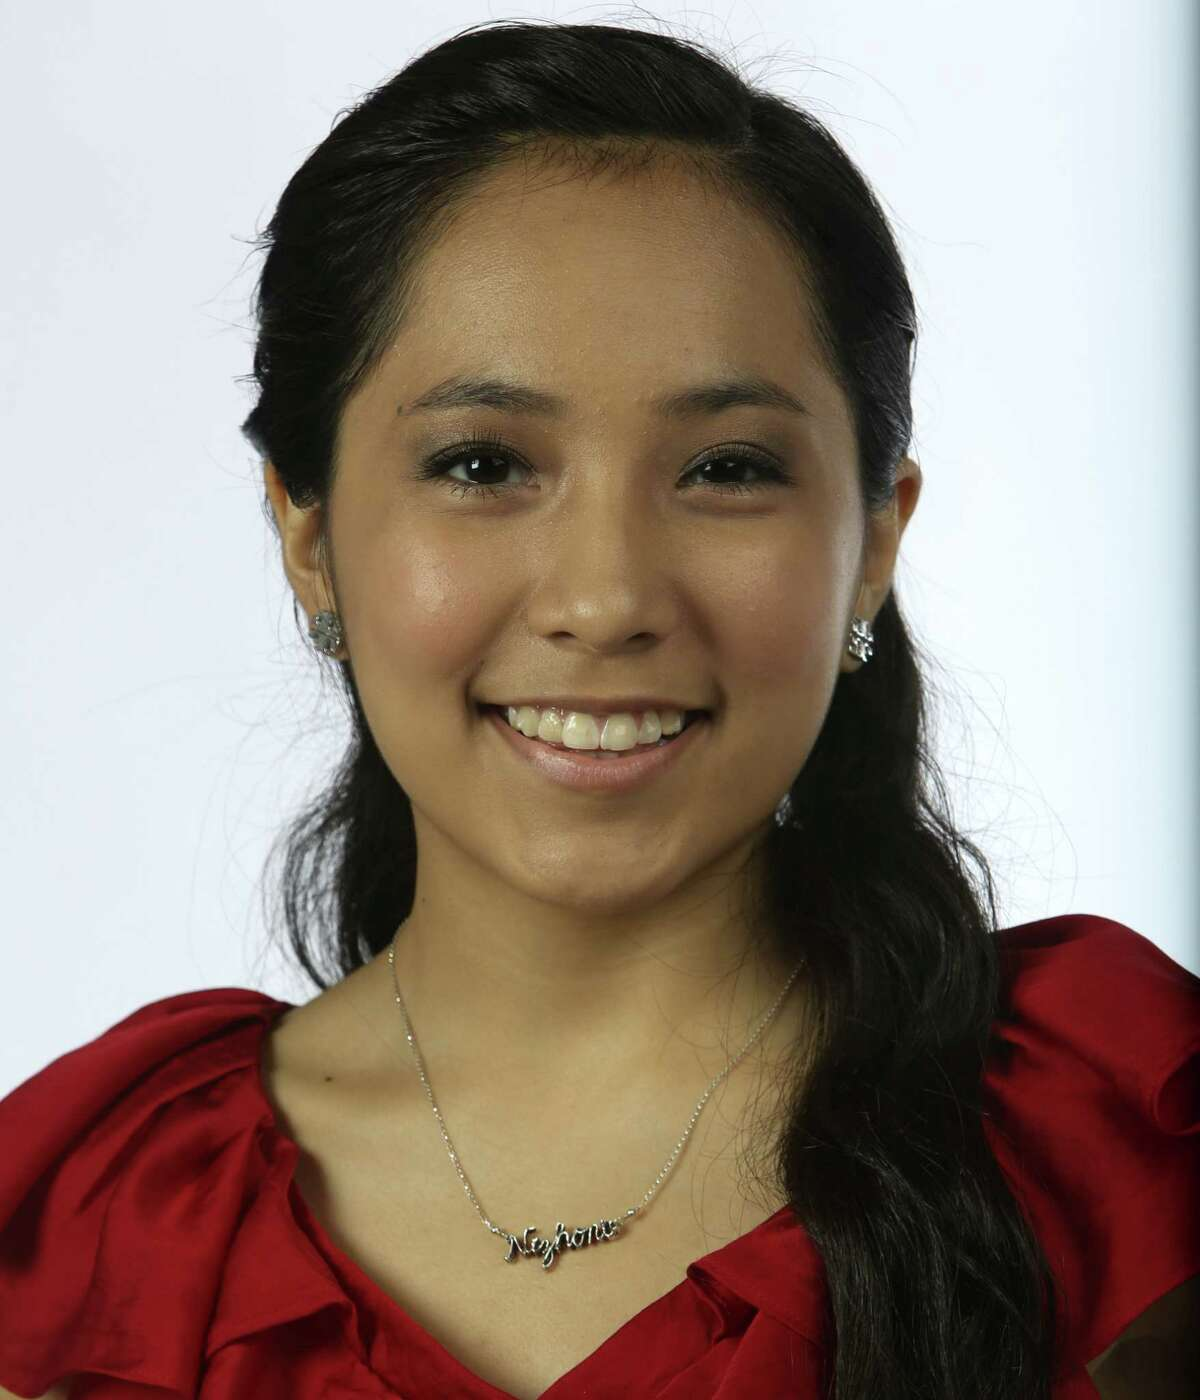 """Nizhoni Begay, 16 School: Incarnate Word High School Honors: The young singer was selected as one of 20 artists in the state by the Texas Commission on the Arts to join its Young Masters Program this year. In 2013, she was part of the National Hispanic Institute's Great Debate program and was awarded All-State Orator honors. About her: The Tucson, Arizona, native has been performing mariachi music since she was 7 years old. """"I love mariachi so much,"""" she says. """"It's so powerful. It creates such an emotional connection."""" She's a member of the Mariachi Corazón de San Antonio, an all-star high school mariachi group that represents the city of San Antonio, and she's mentored younger mariachi students. Her mariachi skills earned her first-place honors in the high school vocal competition in the prestigious Mariachi Vargas Extravaganza in 2012."""